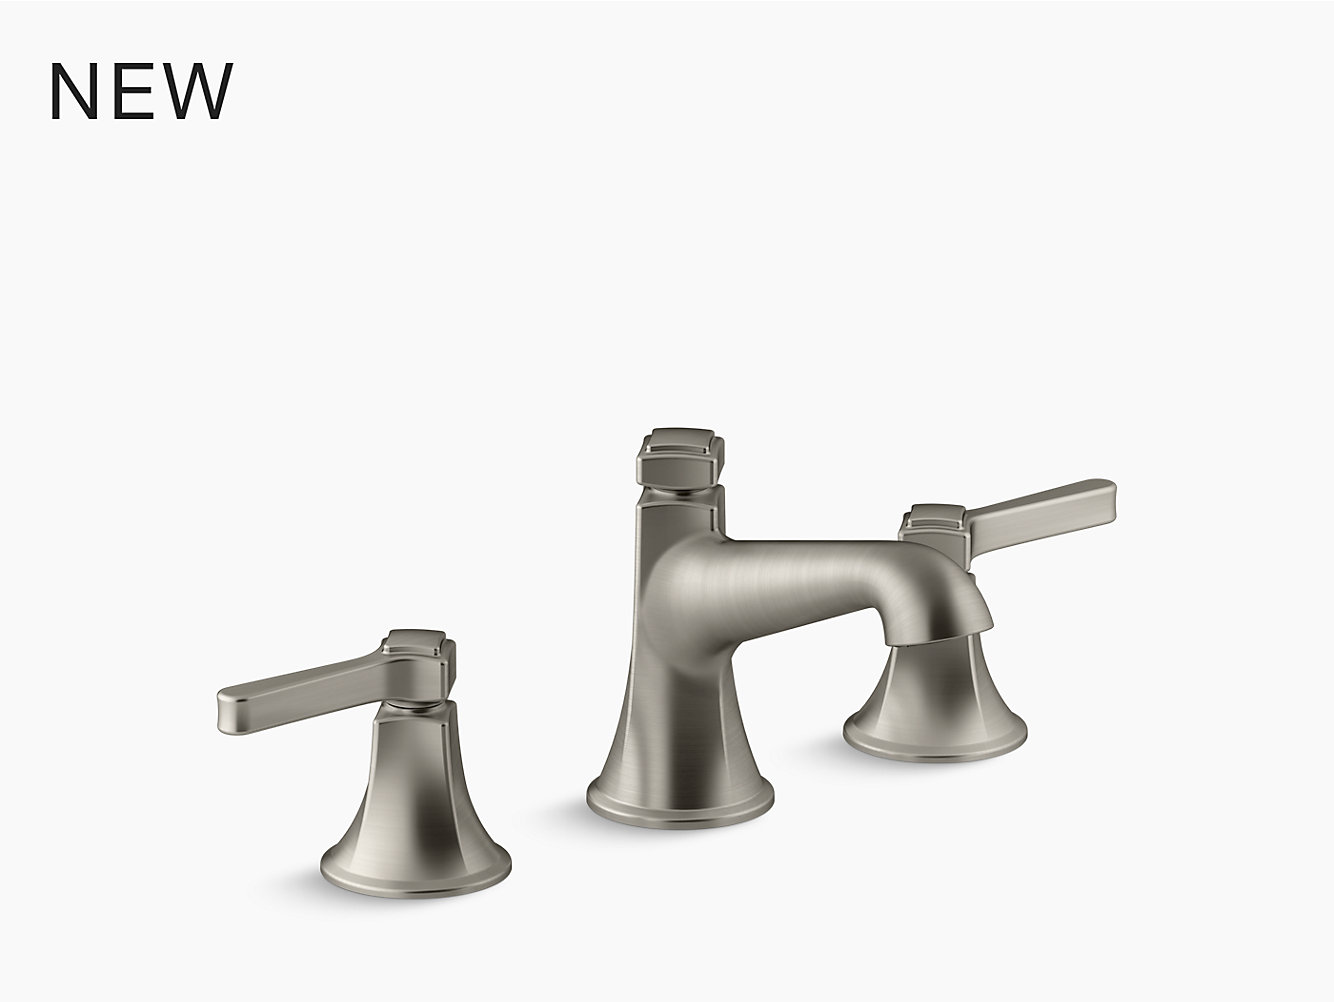 elate kitchen sink faucet with pullout sprayhead k 13963 kohler view larger